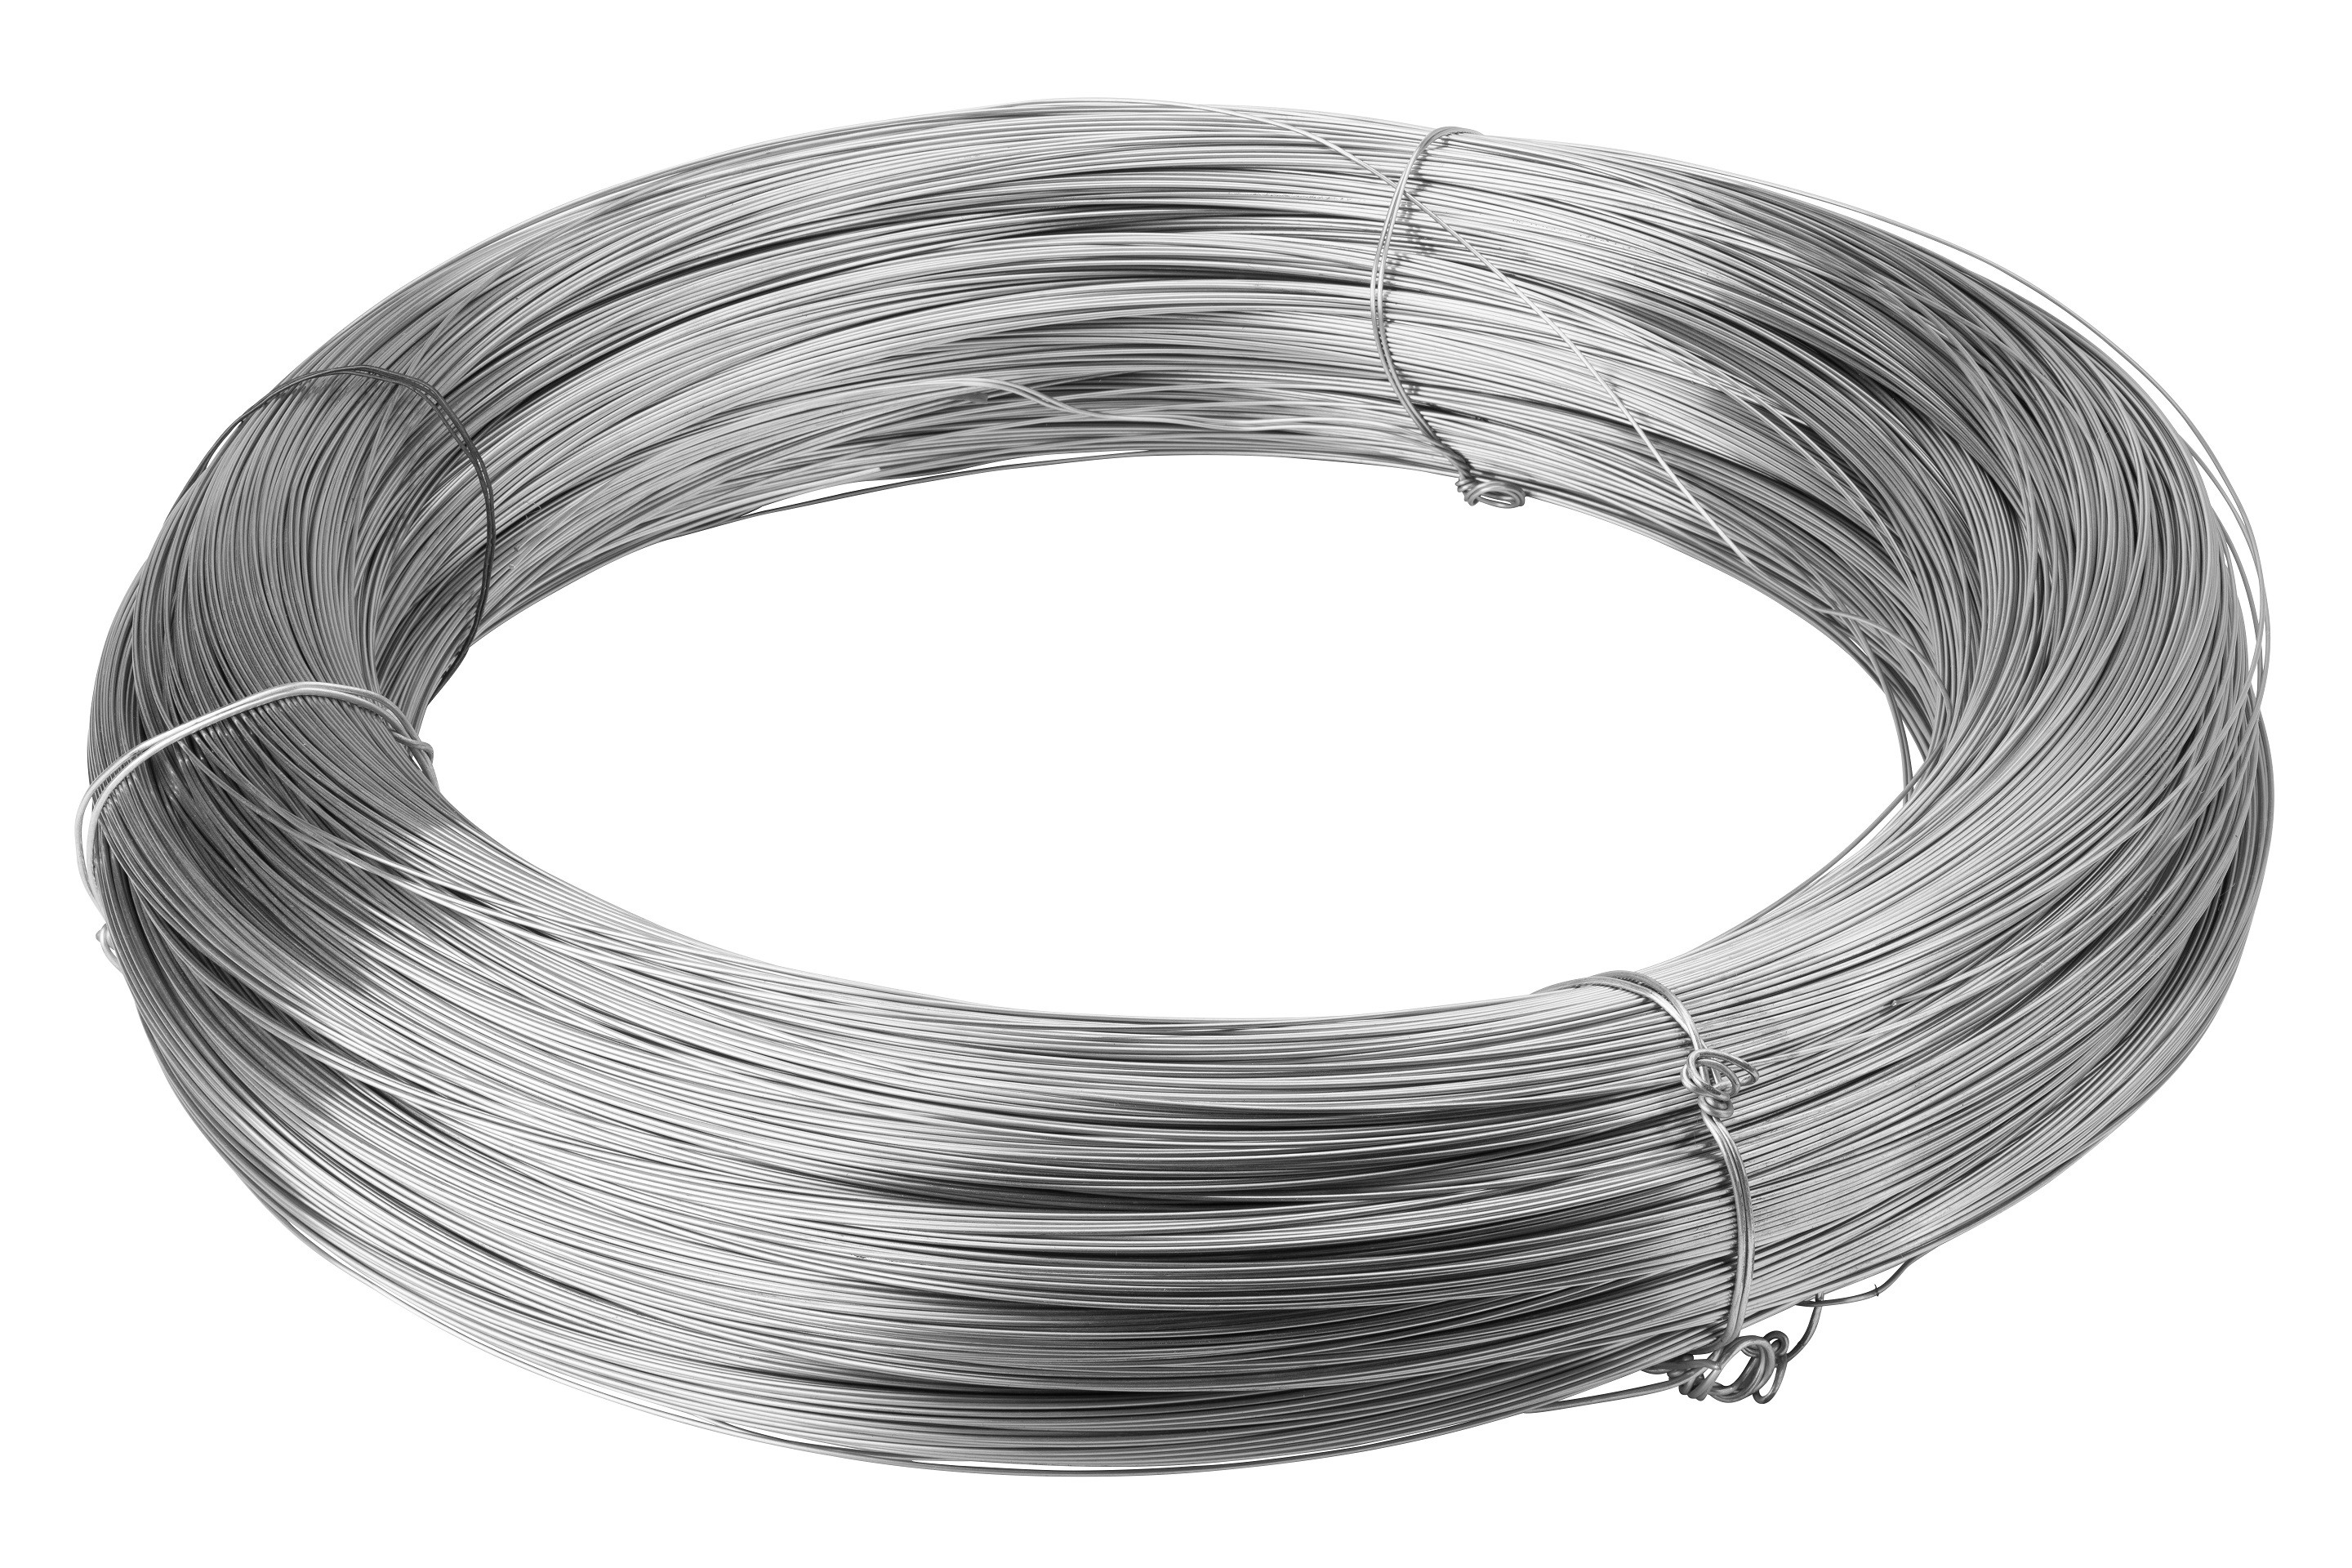 16 Gauge Tie Wire : Stainless steel tying wire gauge kg coil